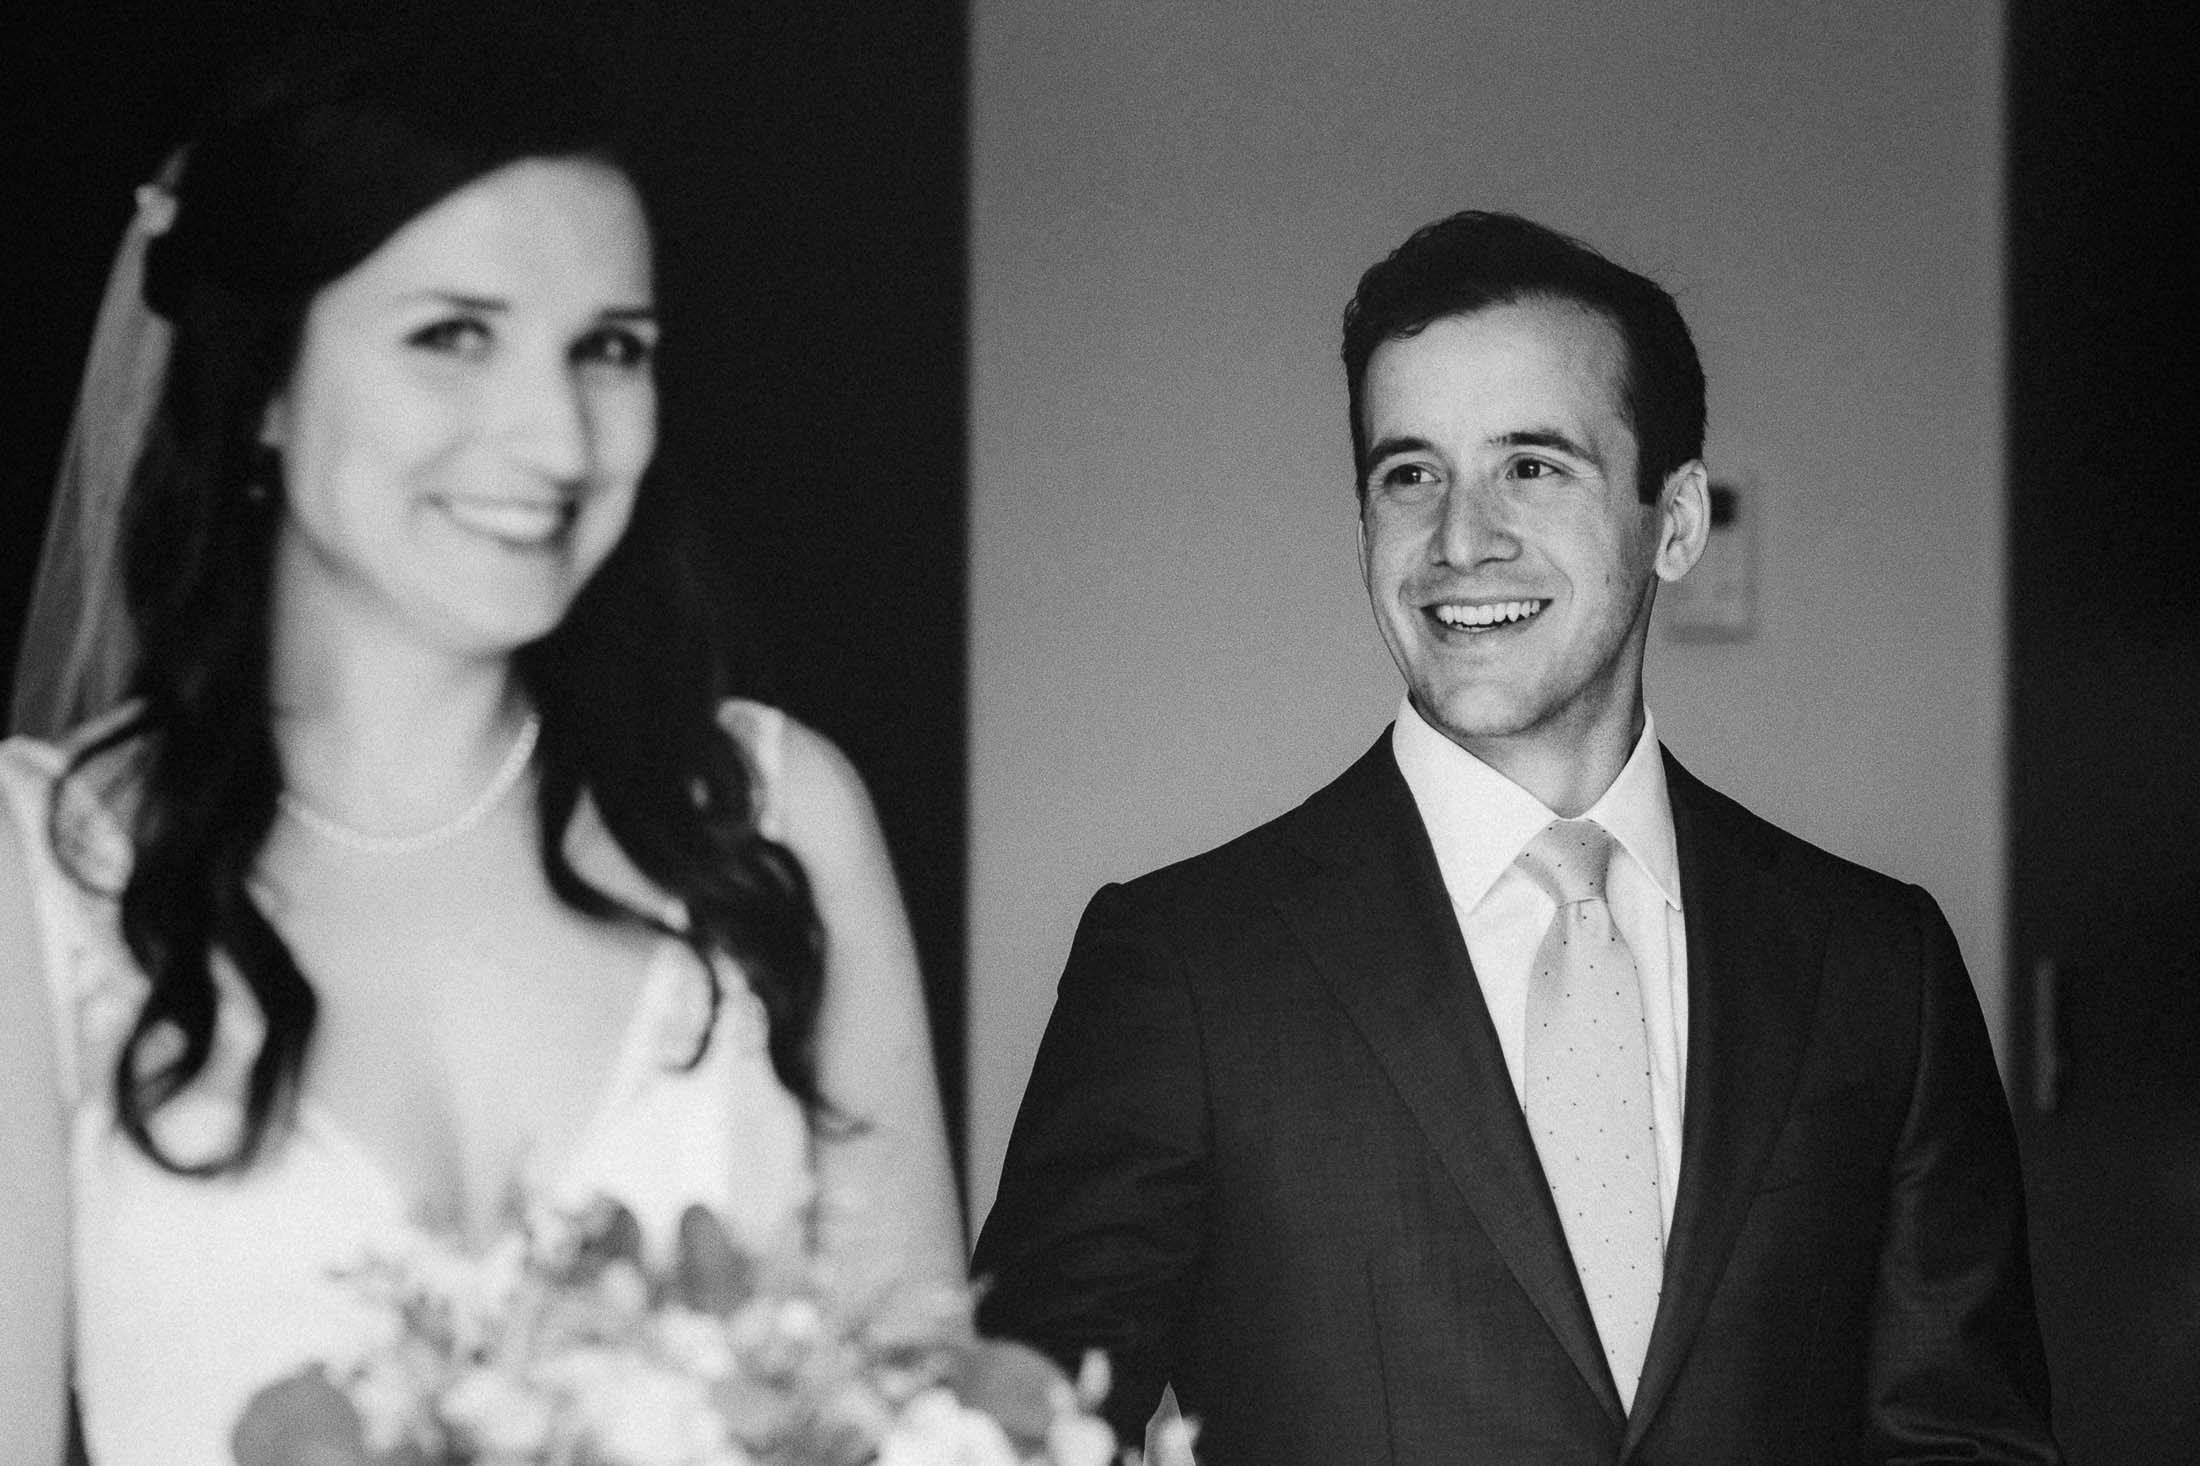 Black and white photo of groom as he sees his bride during a private moment.